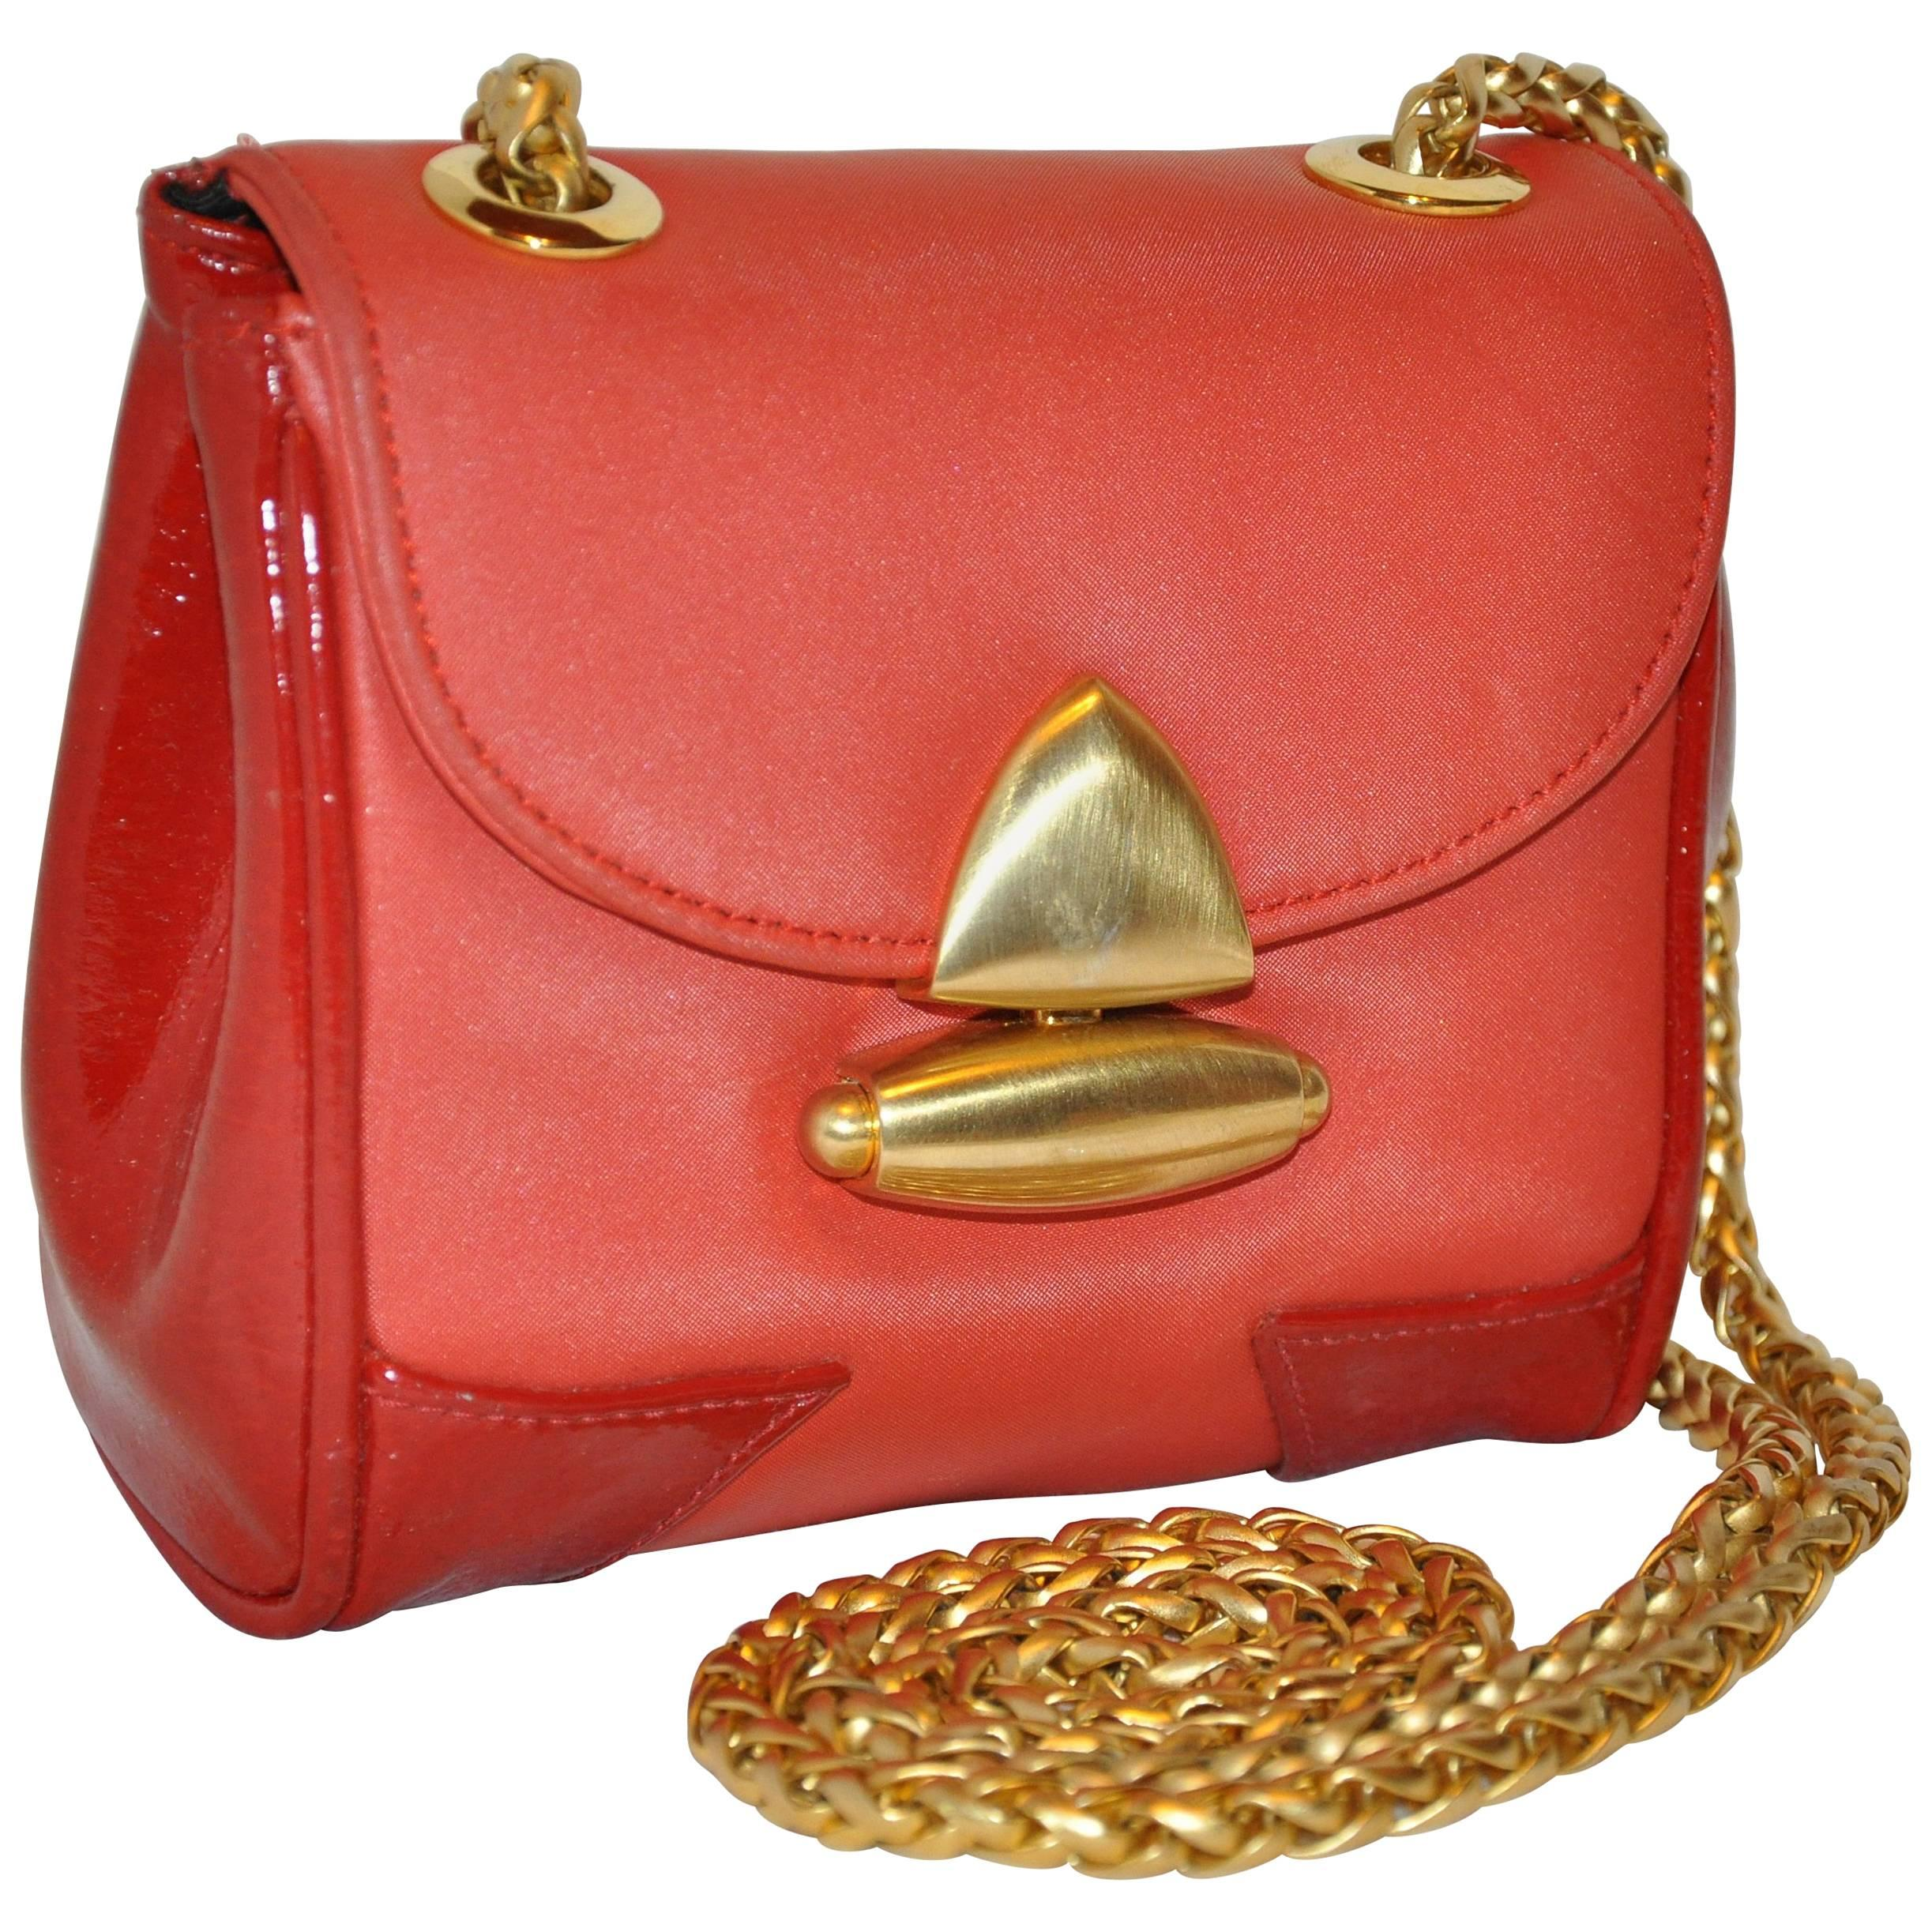 MCM Red with Red Patent Leather Calfskin Miniature Evening Shoulder Bag